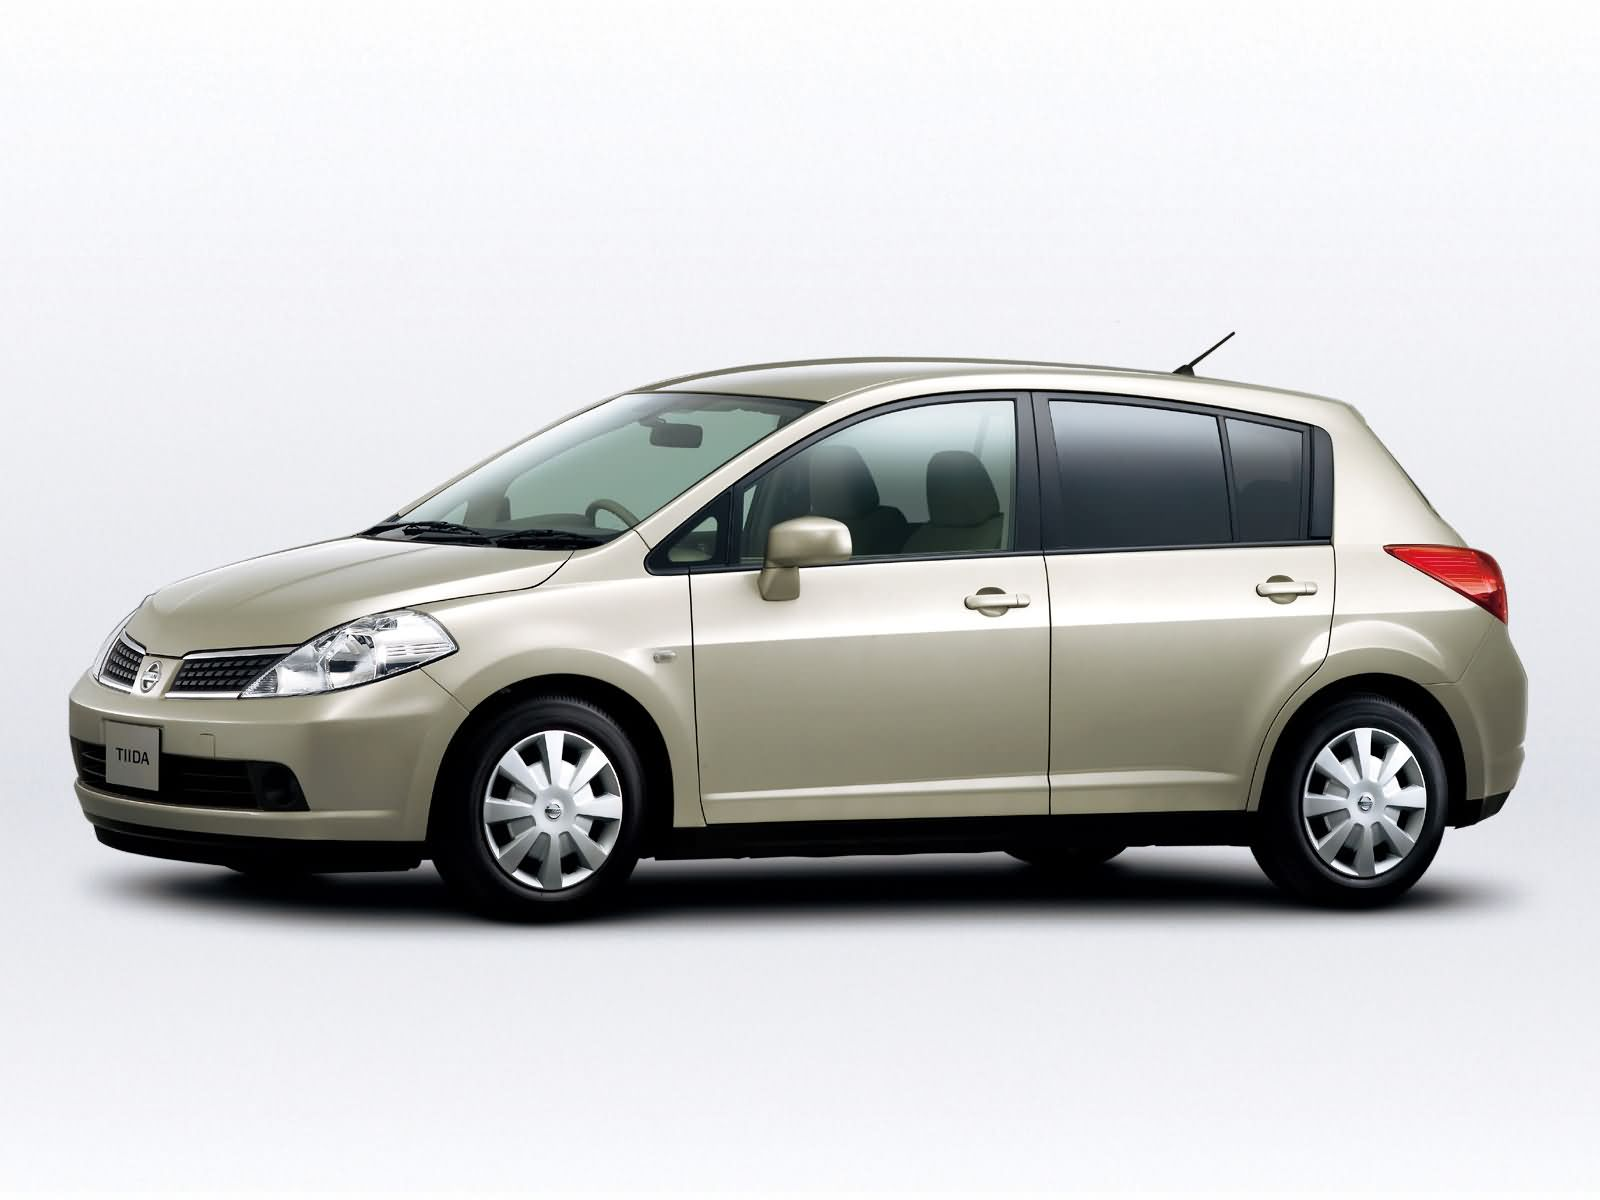 Nissan Tiida photo 15625